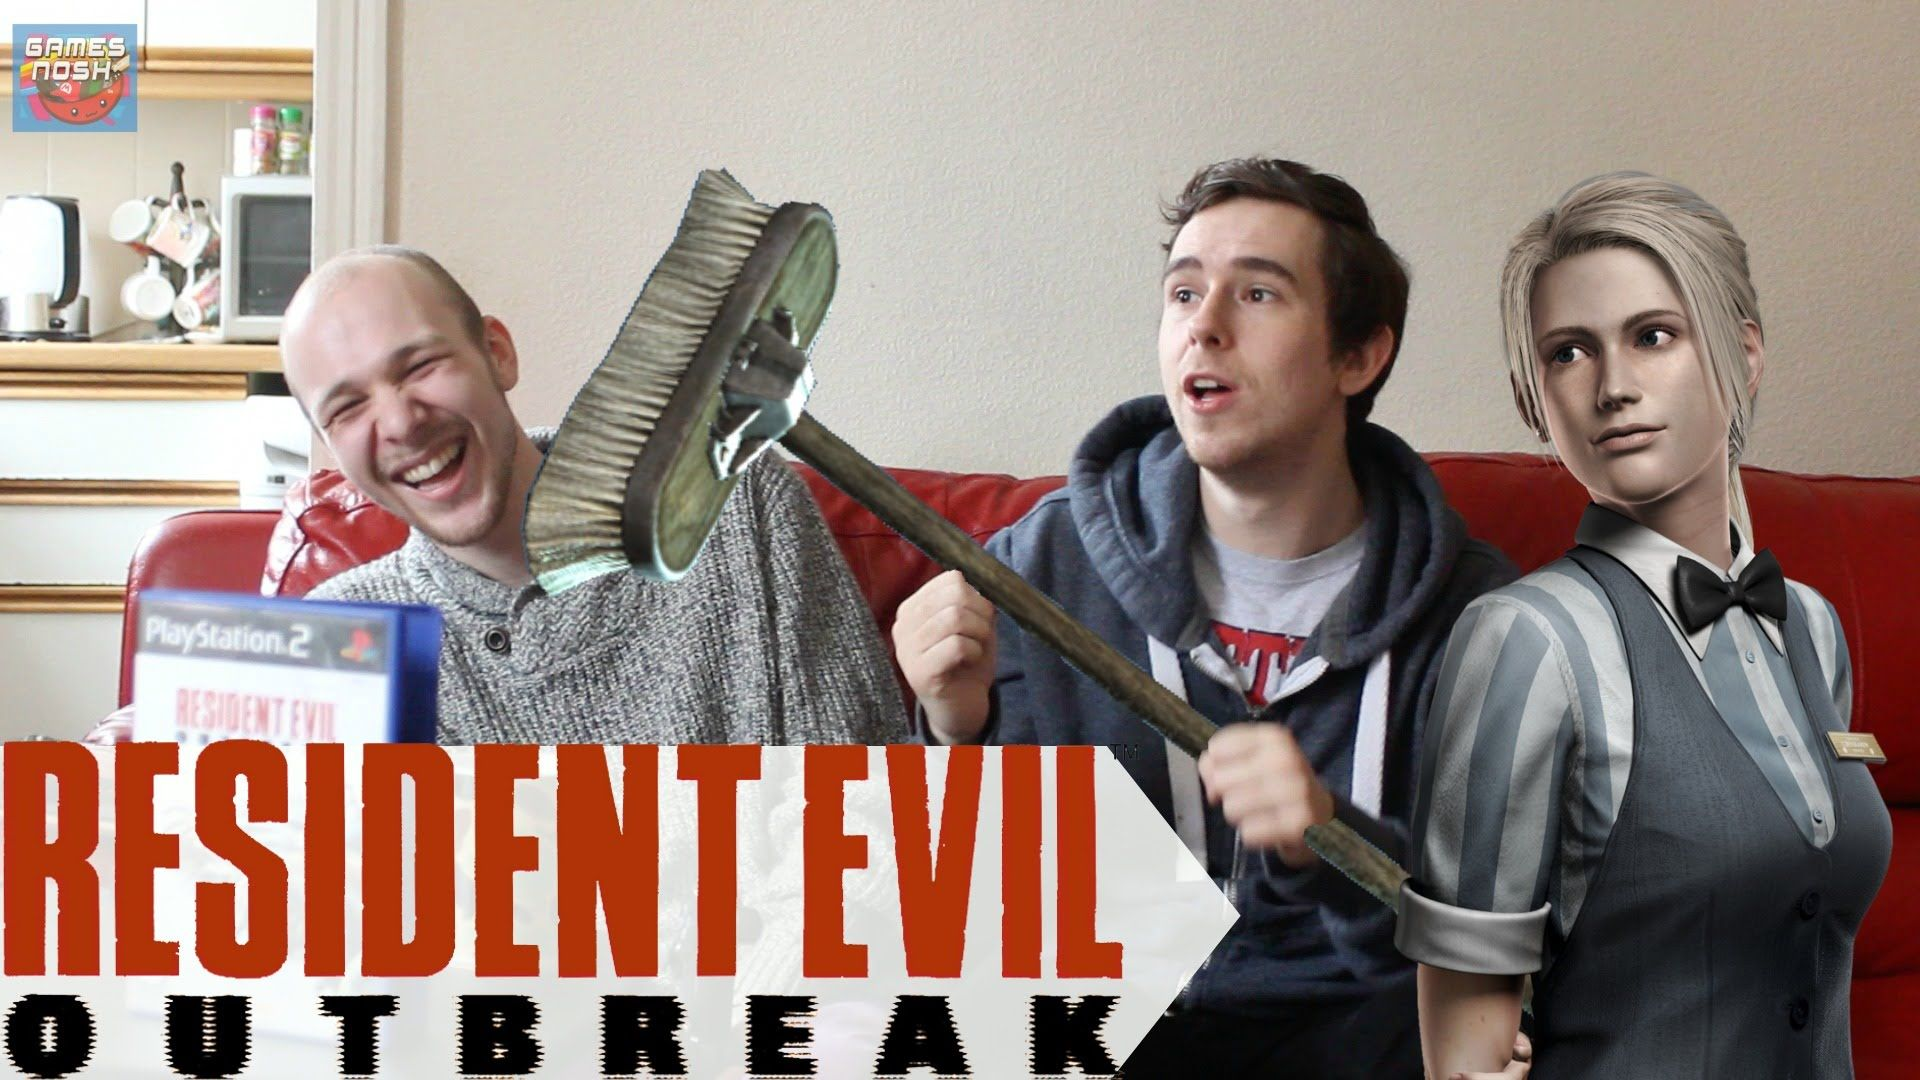 Josh was too busy to film the Resident Evil 5 review, so